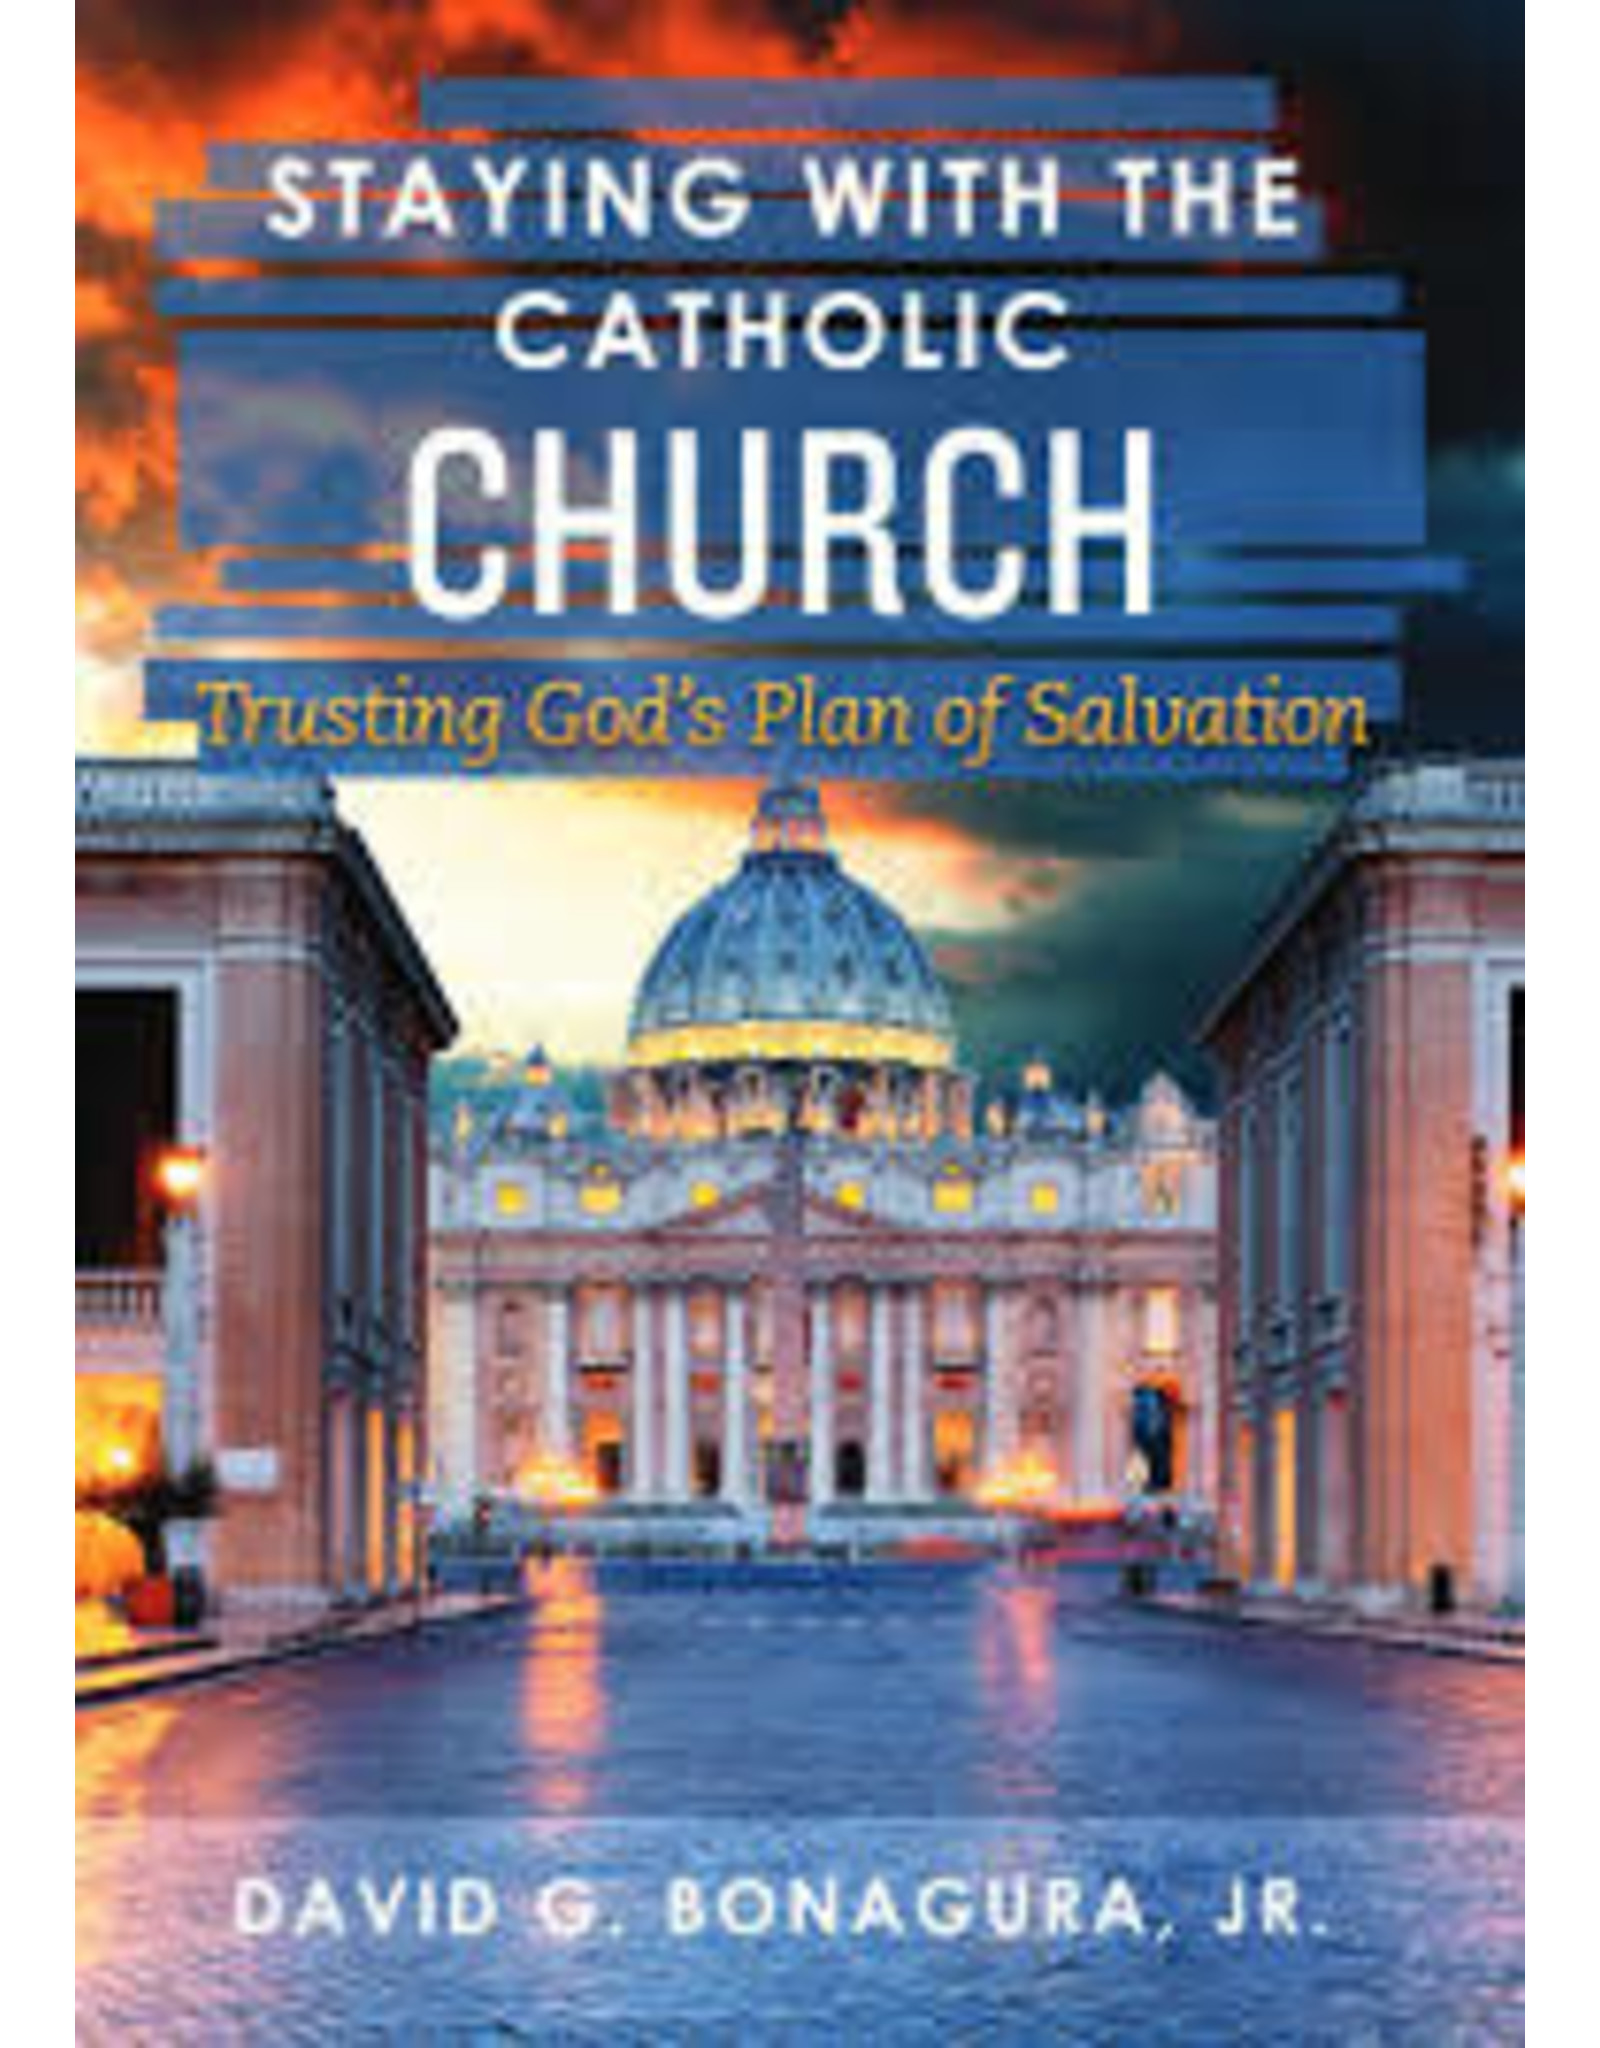 Staying with the Church: Trusting God's Plan of Salvation